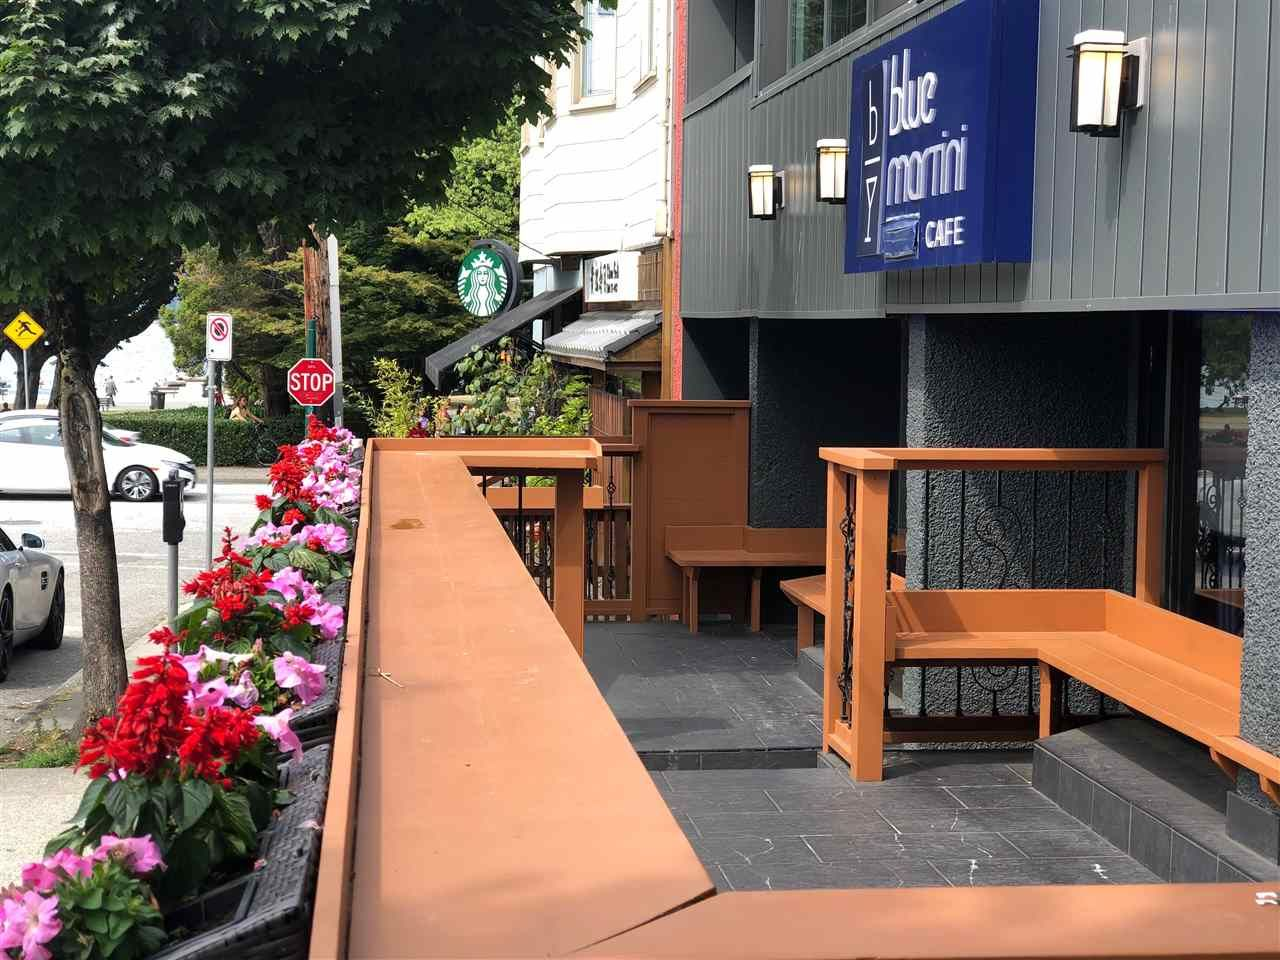 Main Photo: 1516 YEW Street in Vancouver: Kitsilano Business for sale (Vancouver West)  : MLS®# C8031902